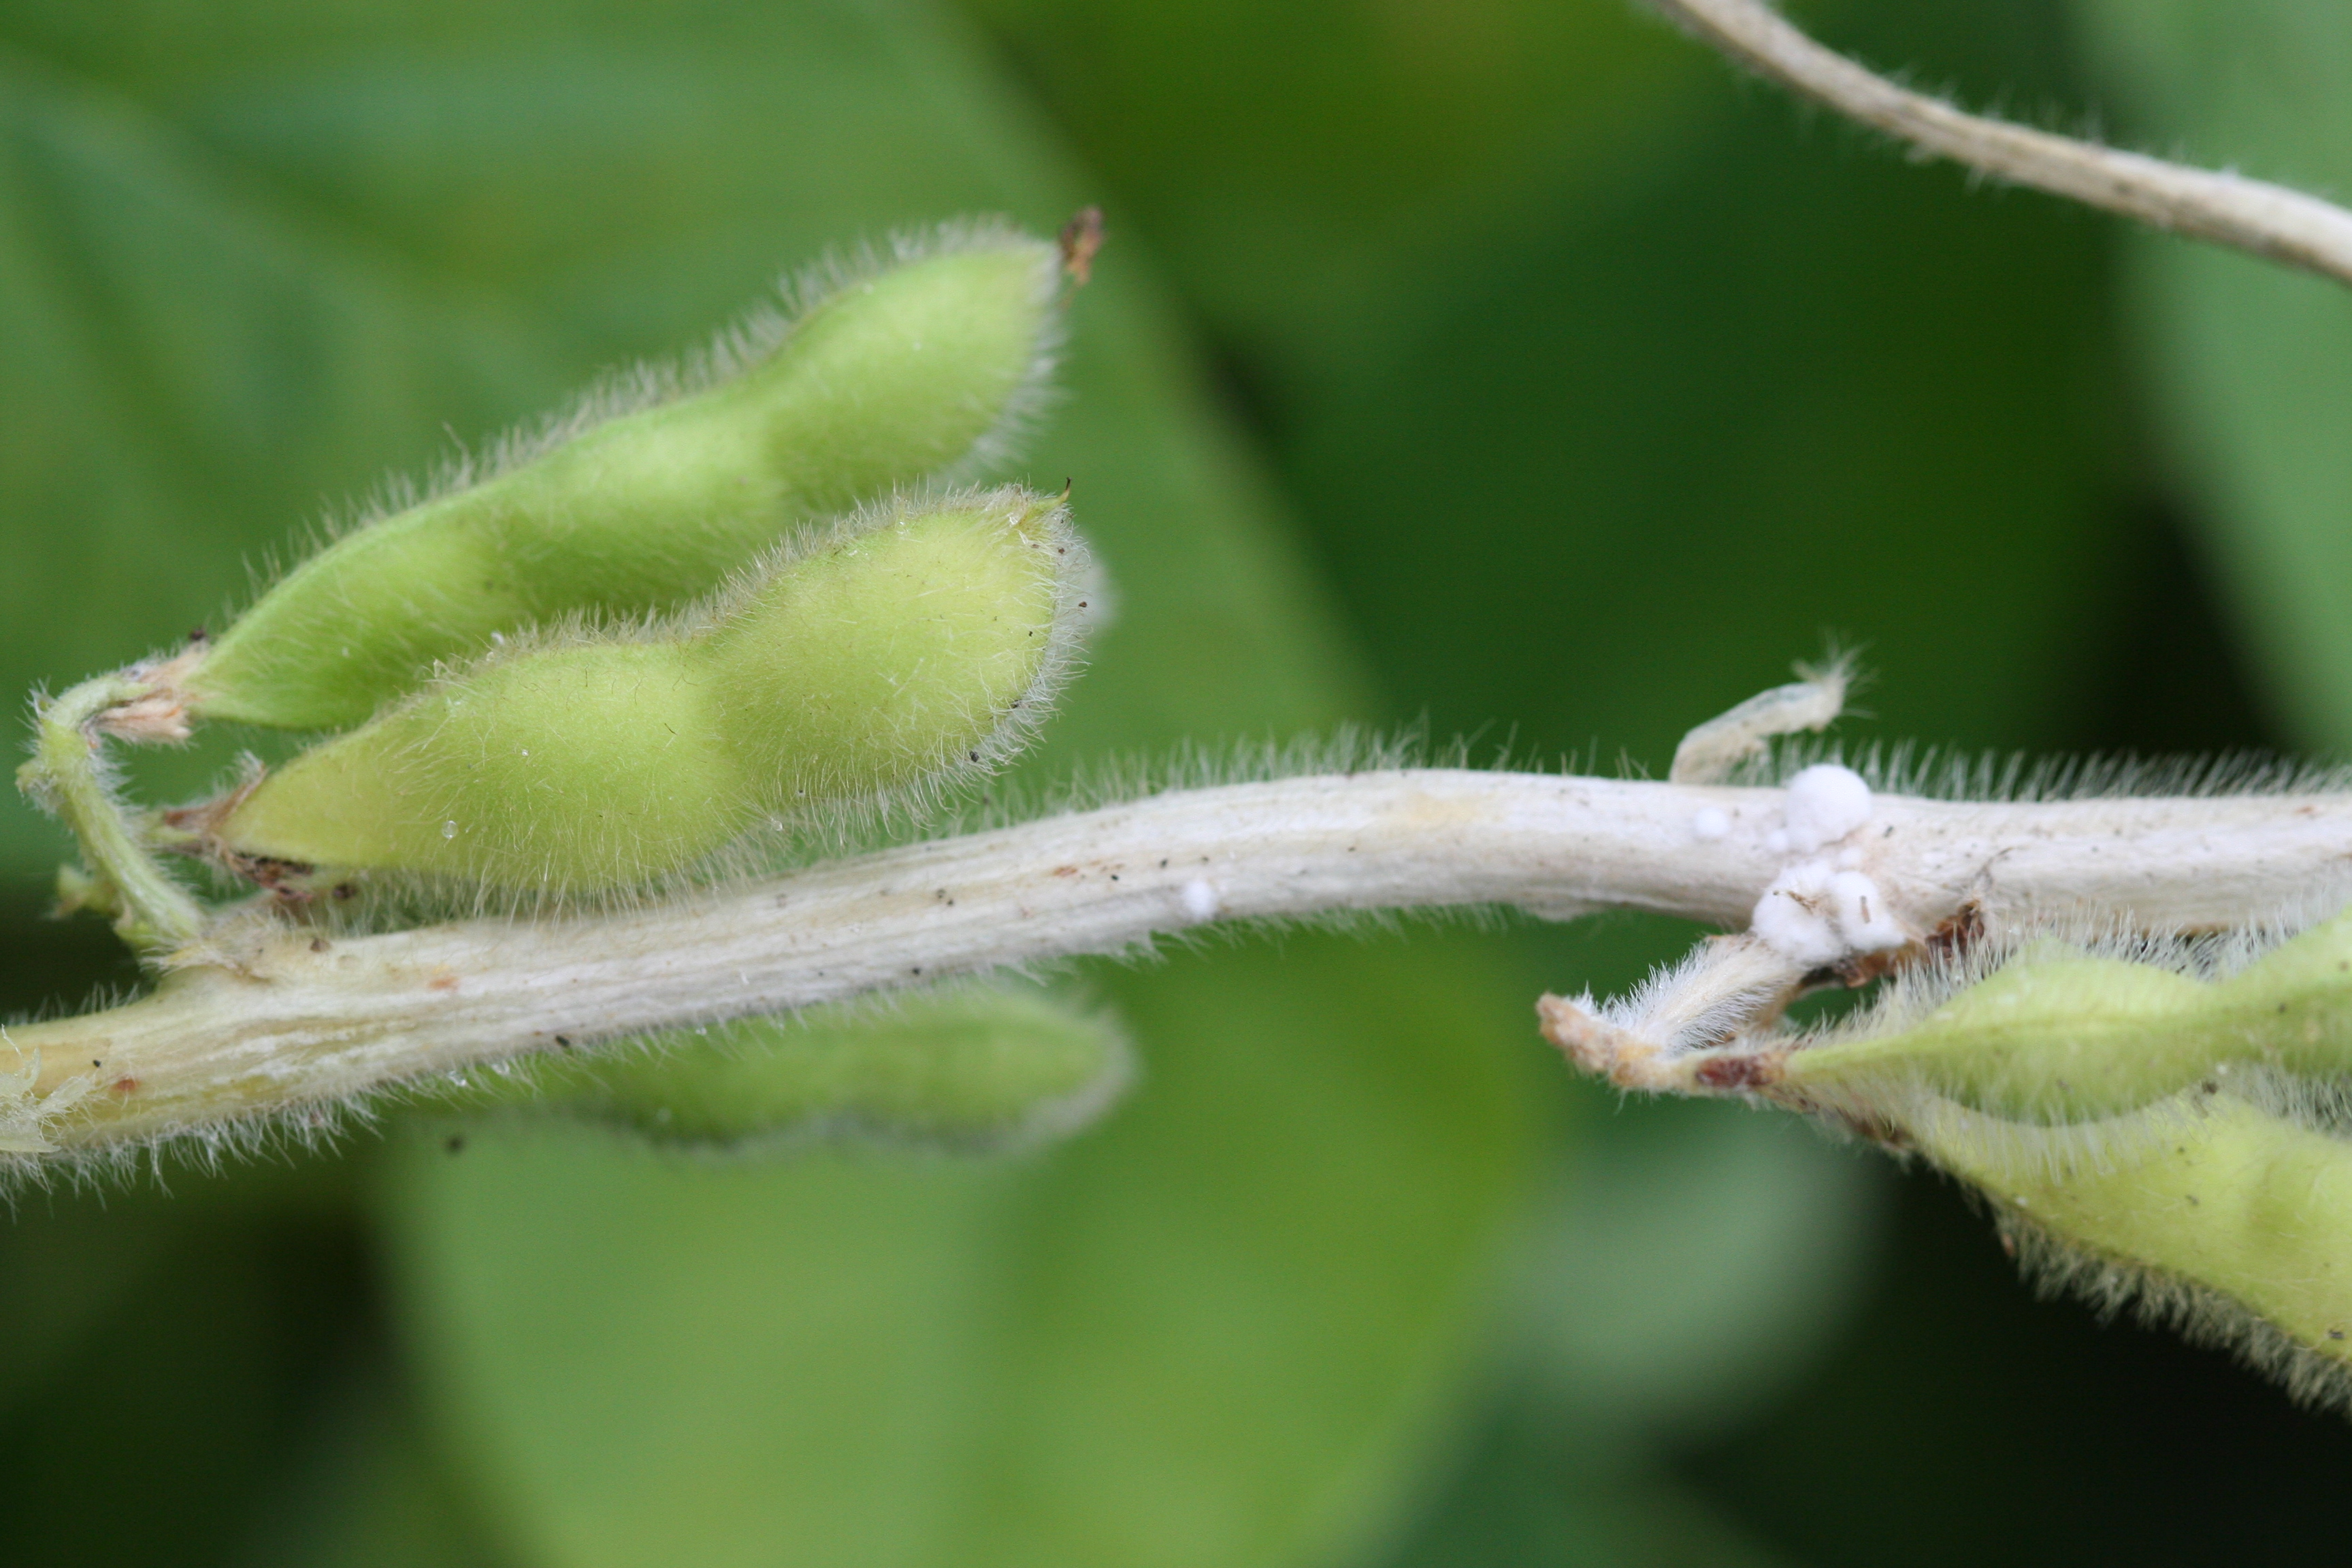 Stem bleaching indicative of white mold.